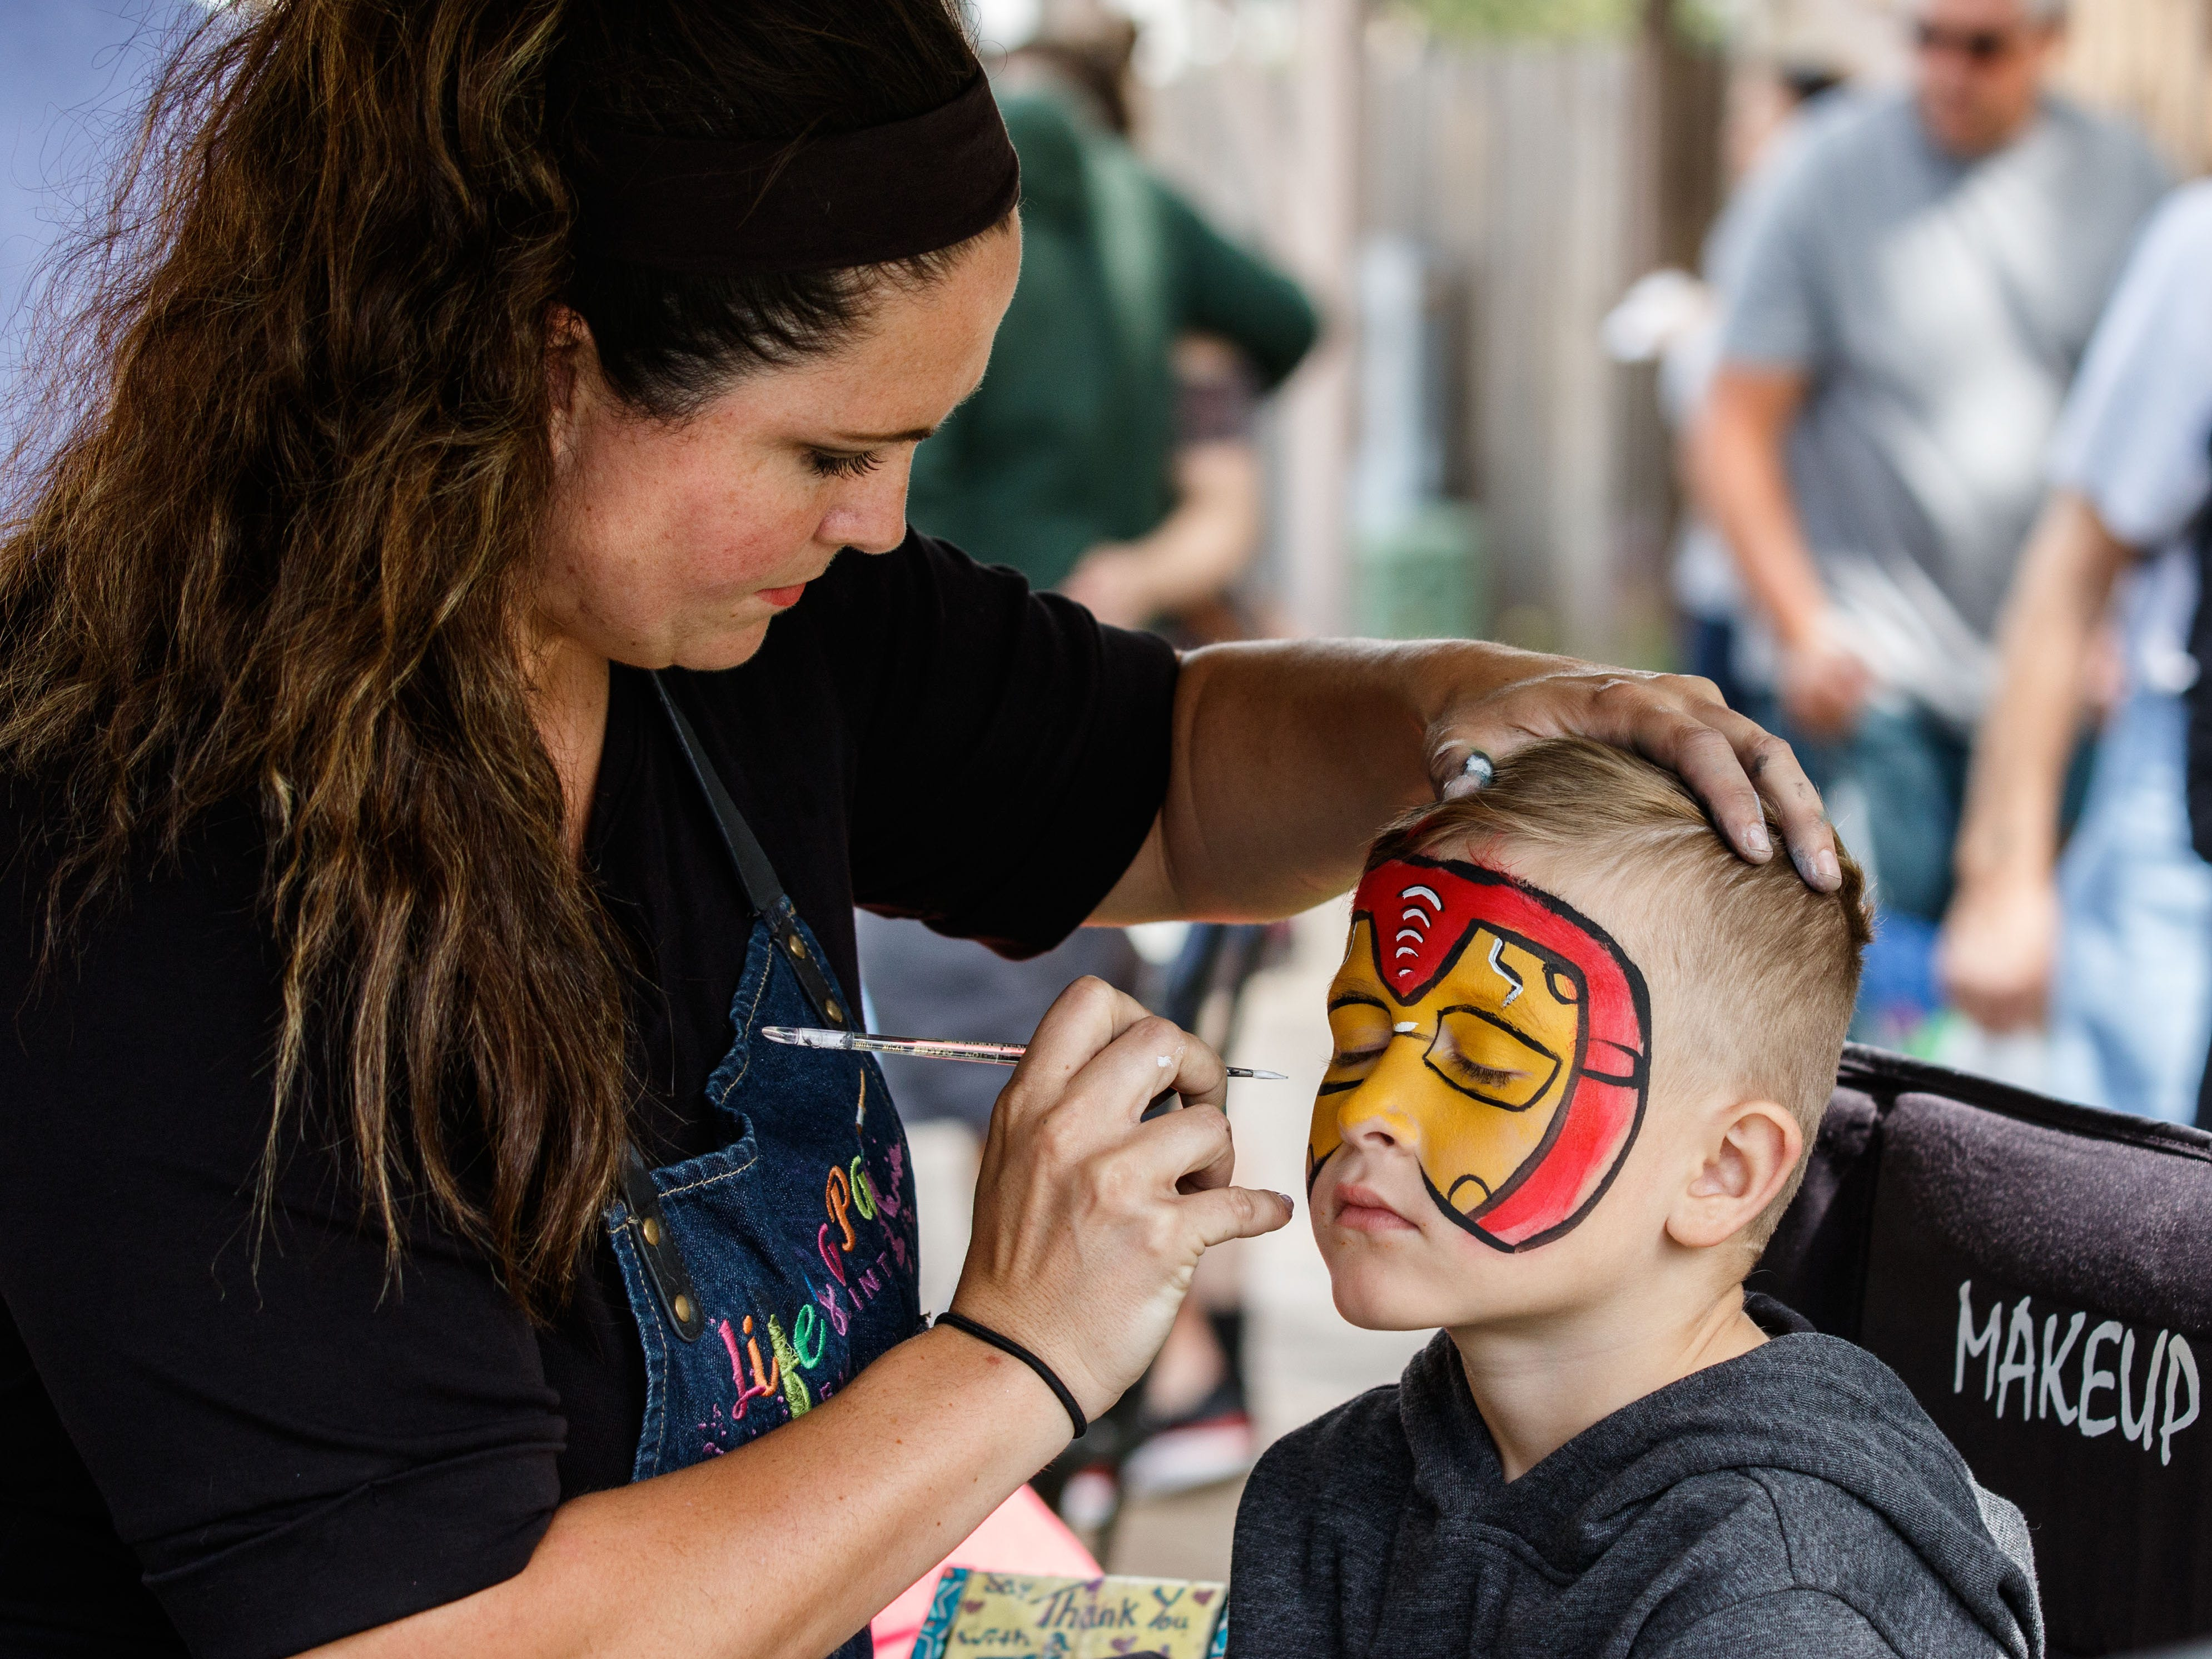 Five-year-old Gibson Bryant of Oconomowoc sits for a face painting by Leea Woolard of Life's A Party Face Painting during the 7th annual Fall Festival hosted by the Downtown Oconomowoc Business Association on Saturday, Sept. 8, 2018. The event features live music, dancing, shopping, arts and crafts, food, refreshments and more.